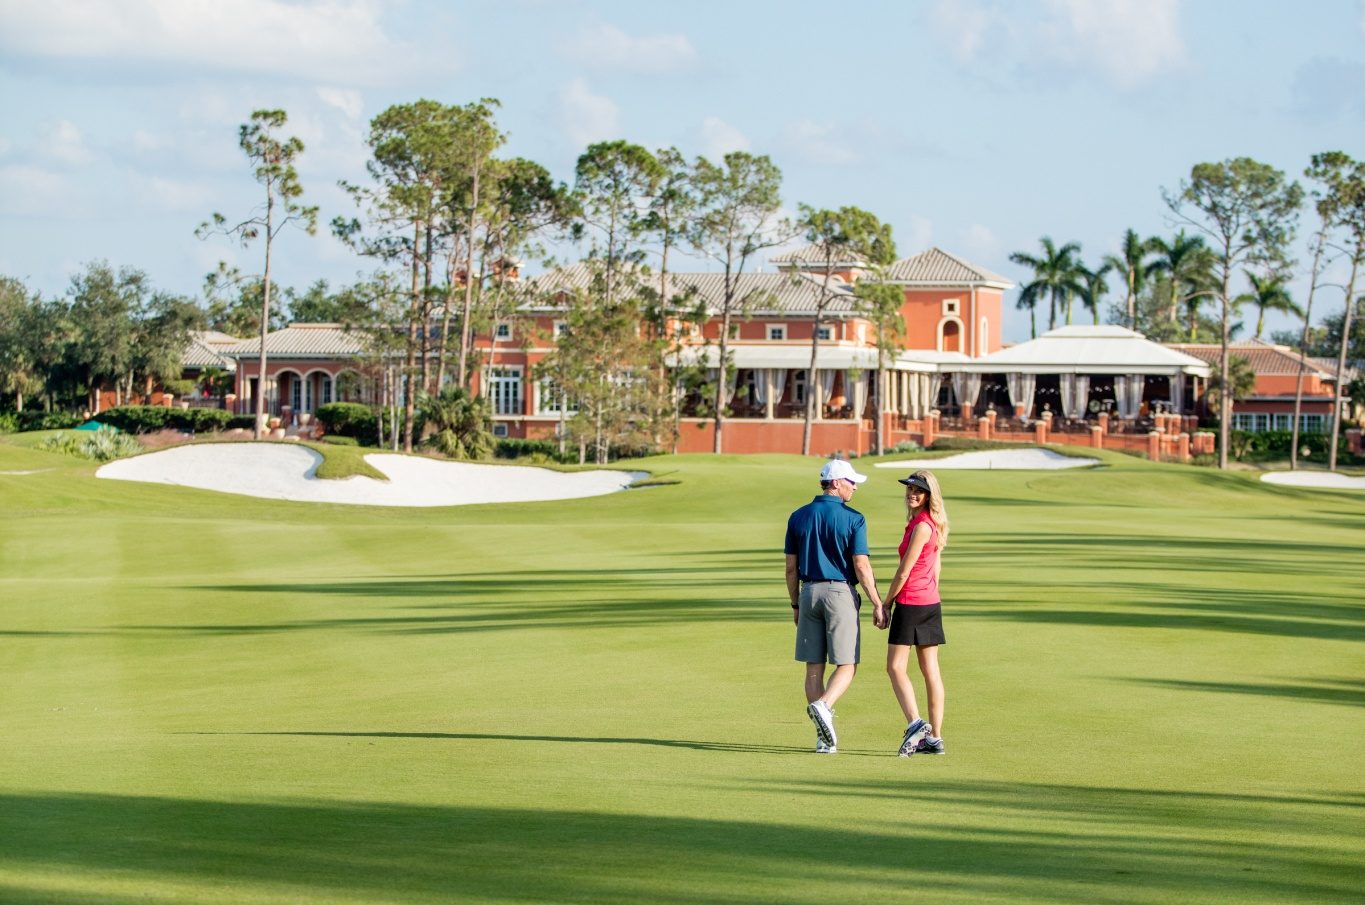 walking_golfcourse_clubhousebackground-7_preview